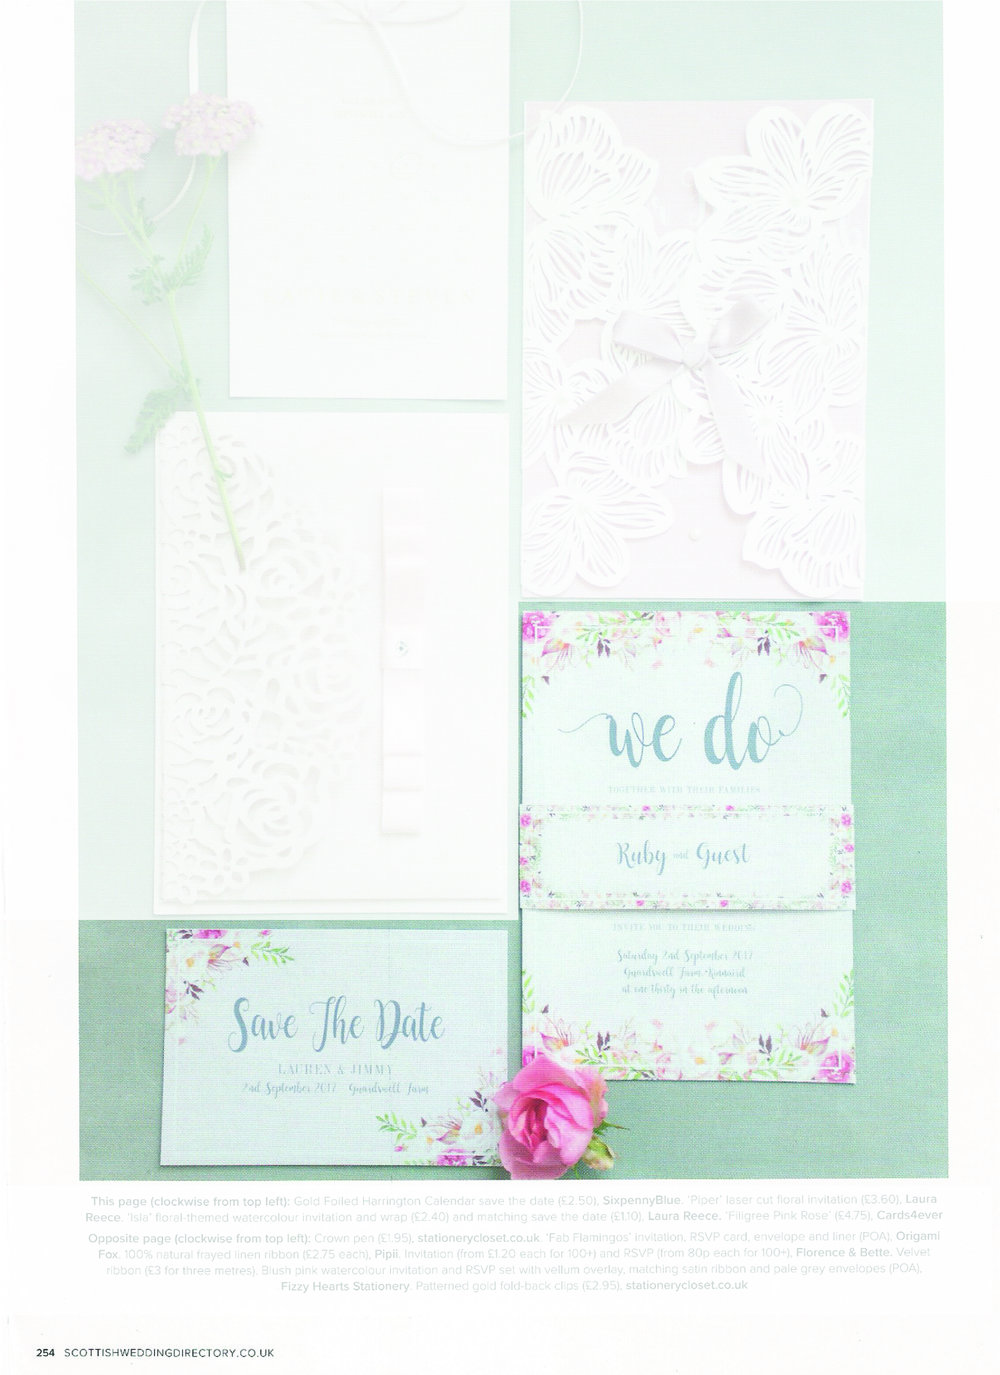 Scottish Wedding Directory - We LOVE this floral themed design. Available in various colour schemes this design was featured in the magazine in pink which fitted in with their pink florals theme.Can be found in autumn 17' issue, page 254.